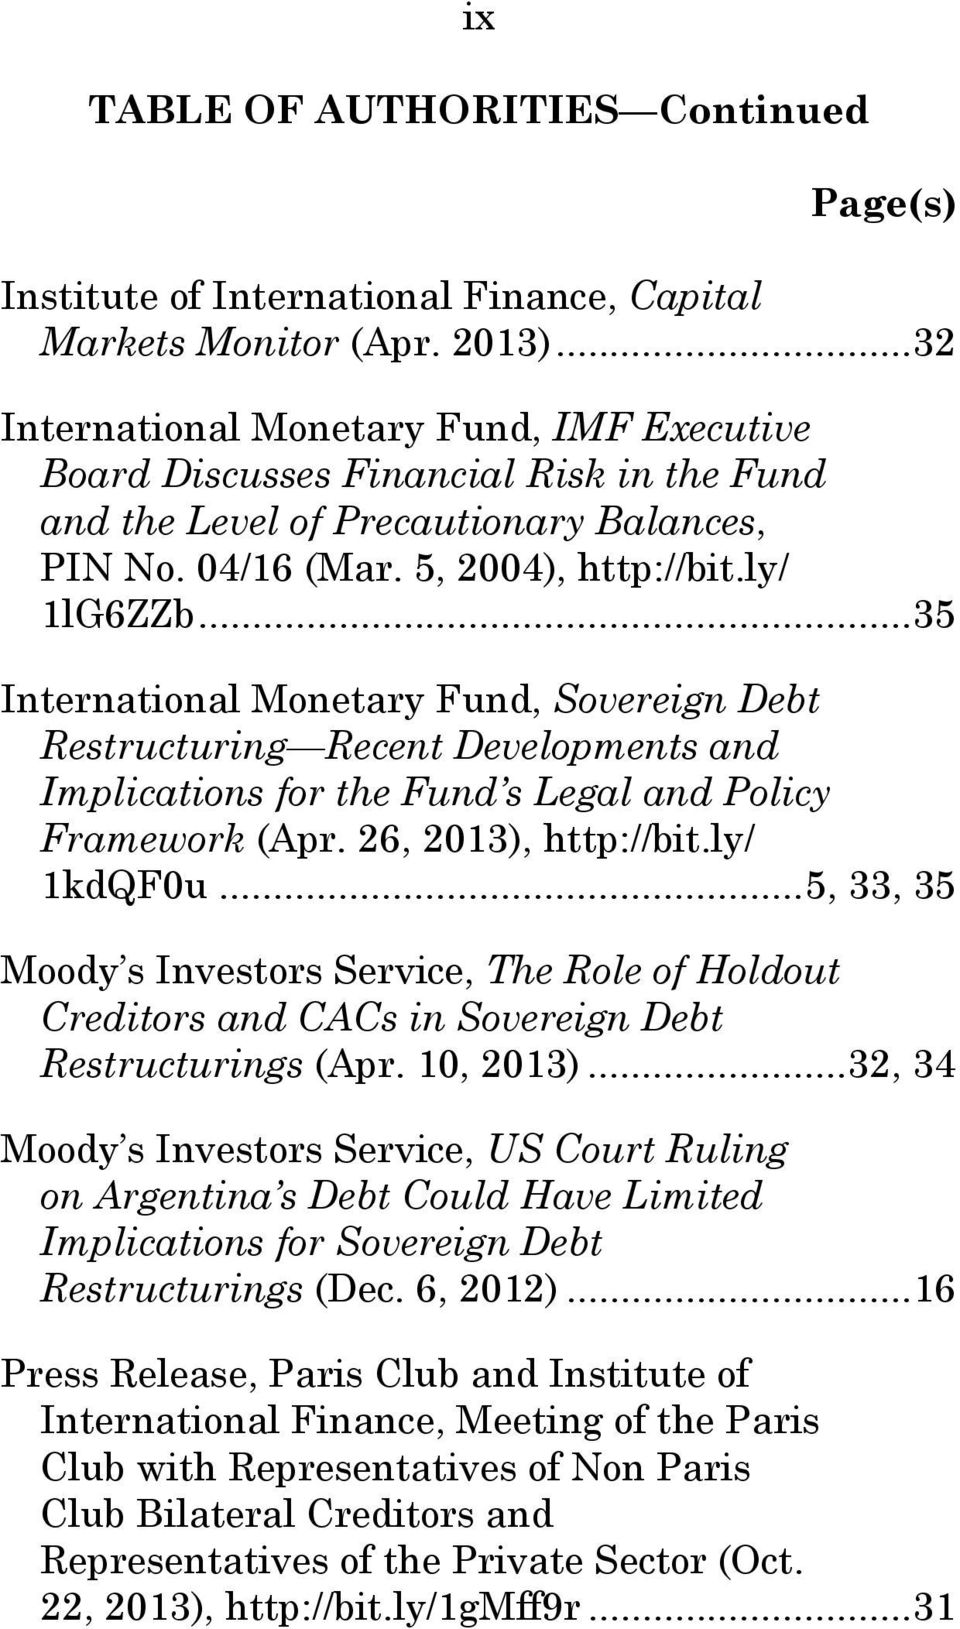 .. 35 International Monetary Fund, Sovereign Debt Restructuring Recent Developments and Implications for the Fund s Legal and Policy Framework (Apr. 26, 2013), http://bit.ly/ 1kdQF0u.